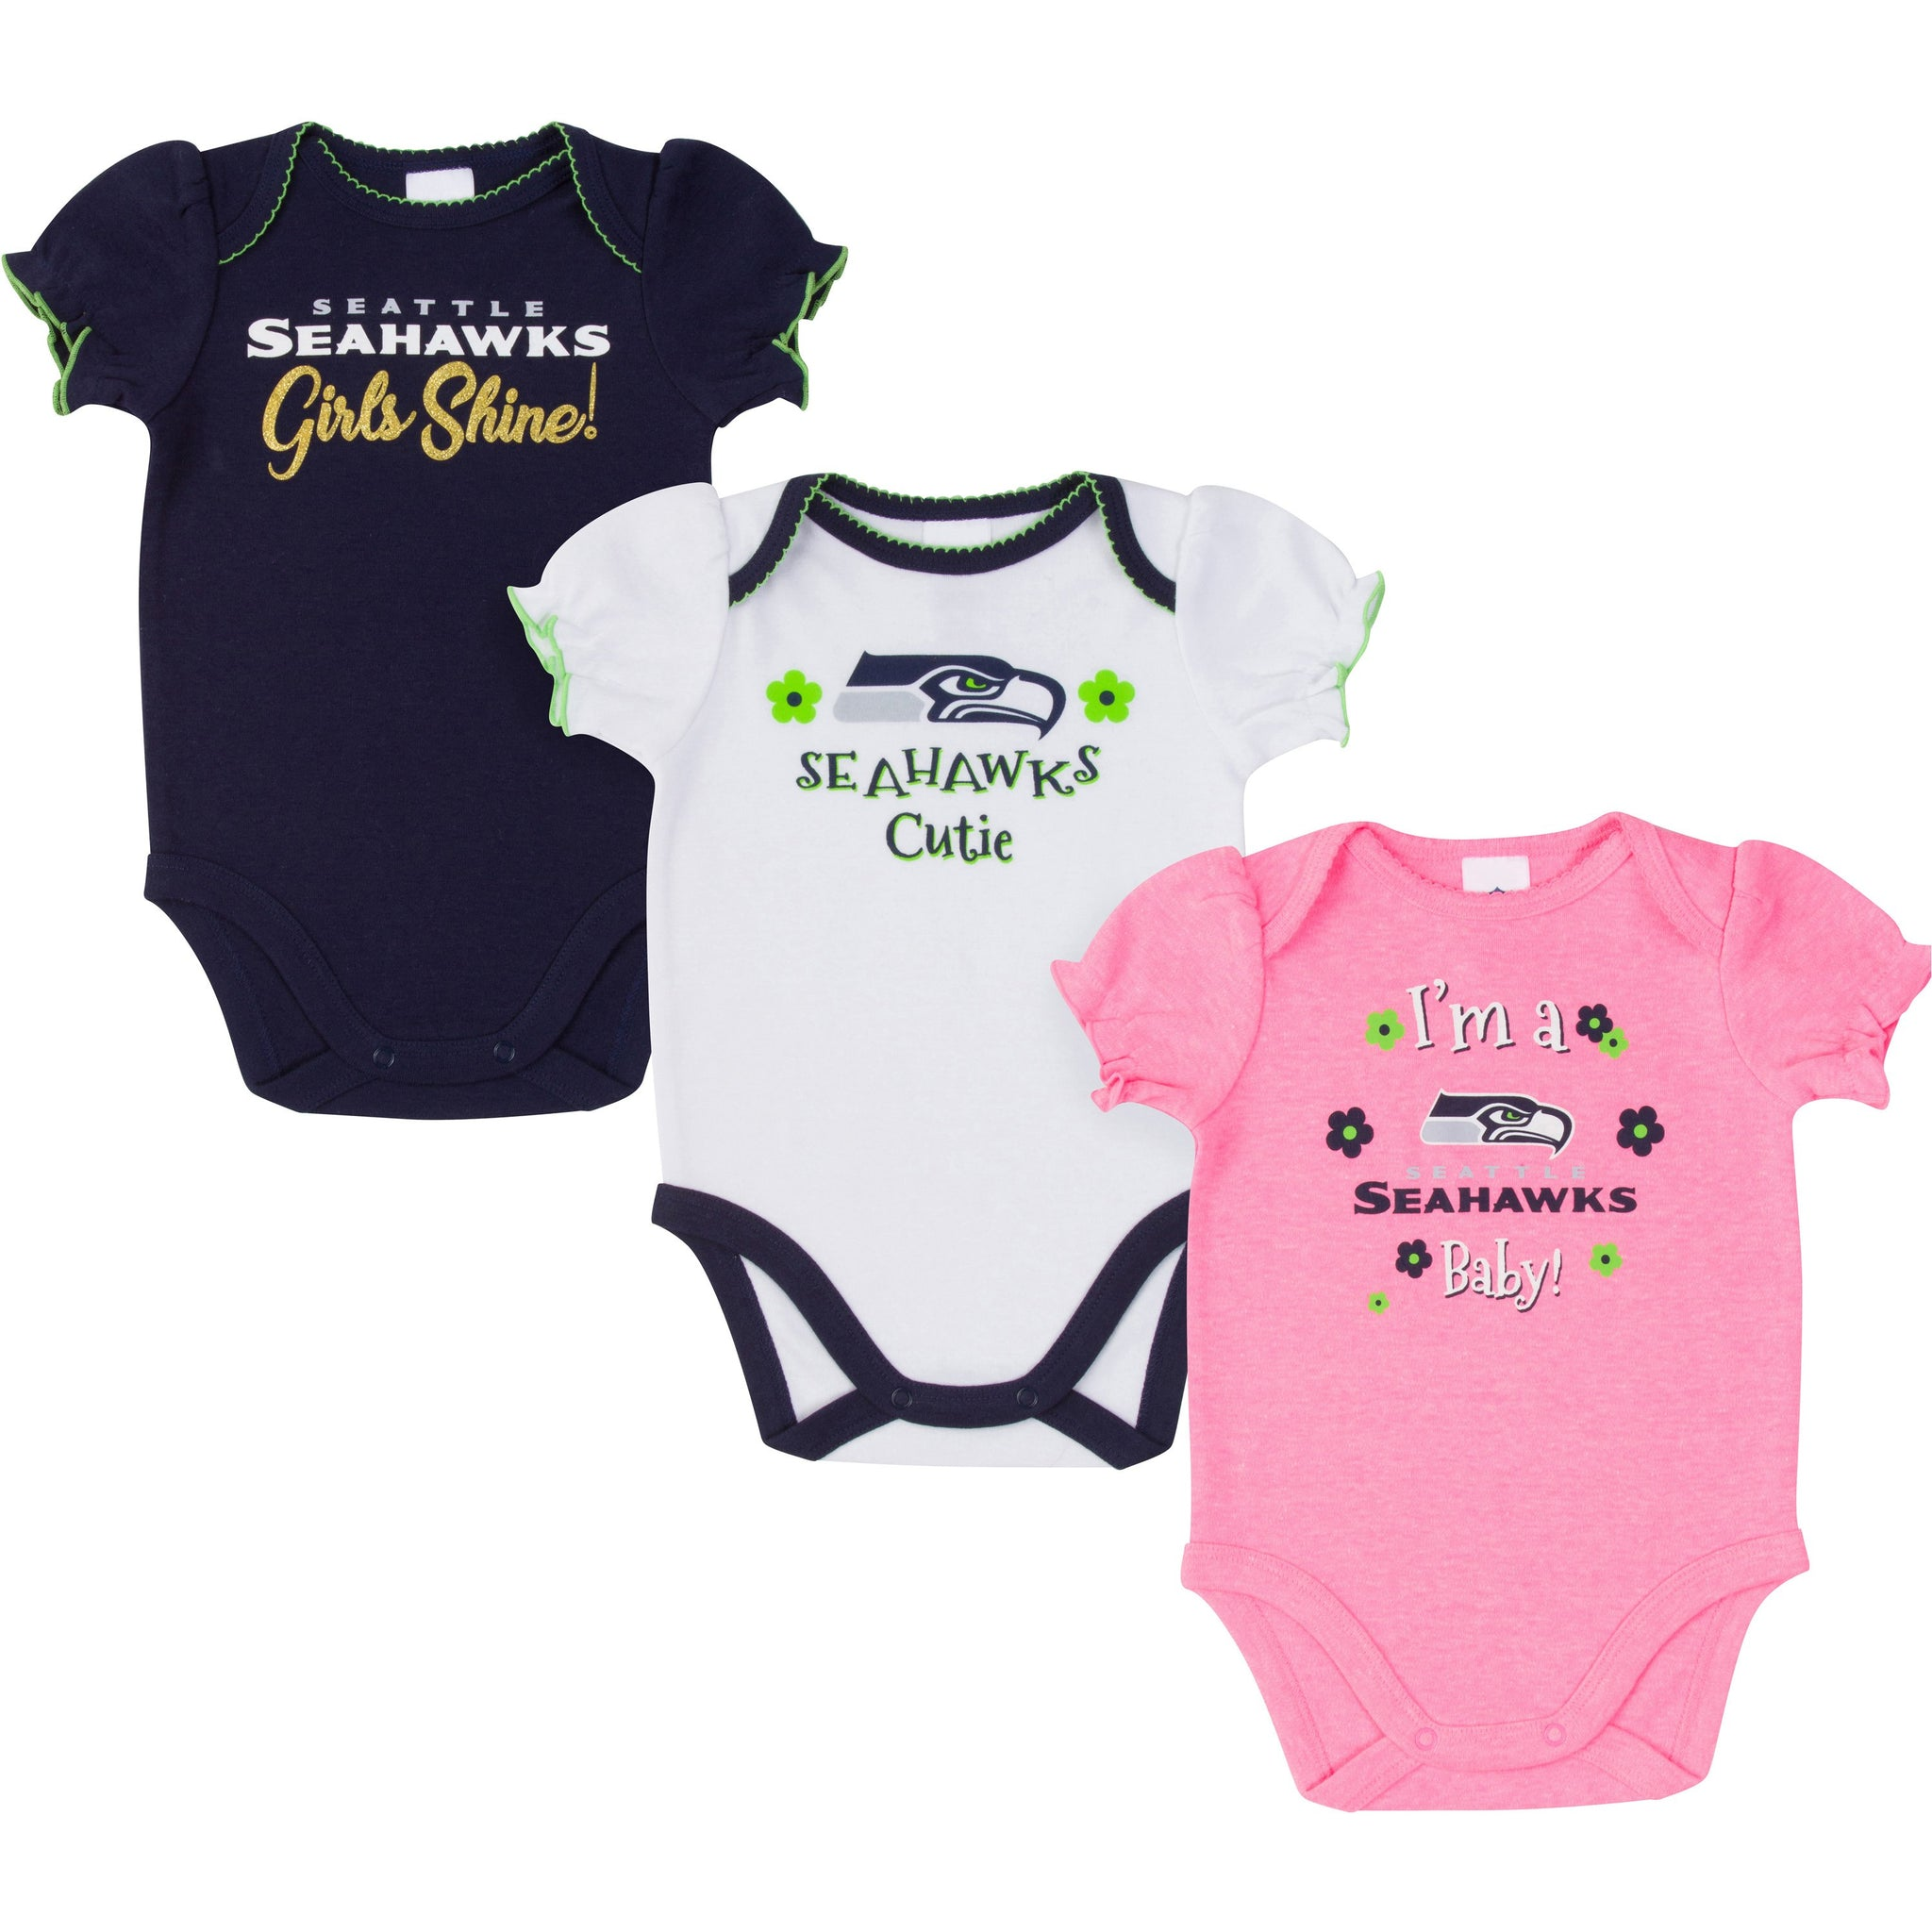 Seattle Seahawks Baby Girl Short Sleeve Bodysuit, 3-pack -Gerber Childrenswear